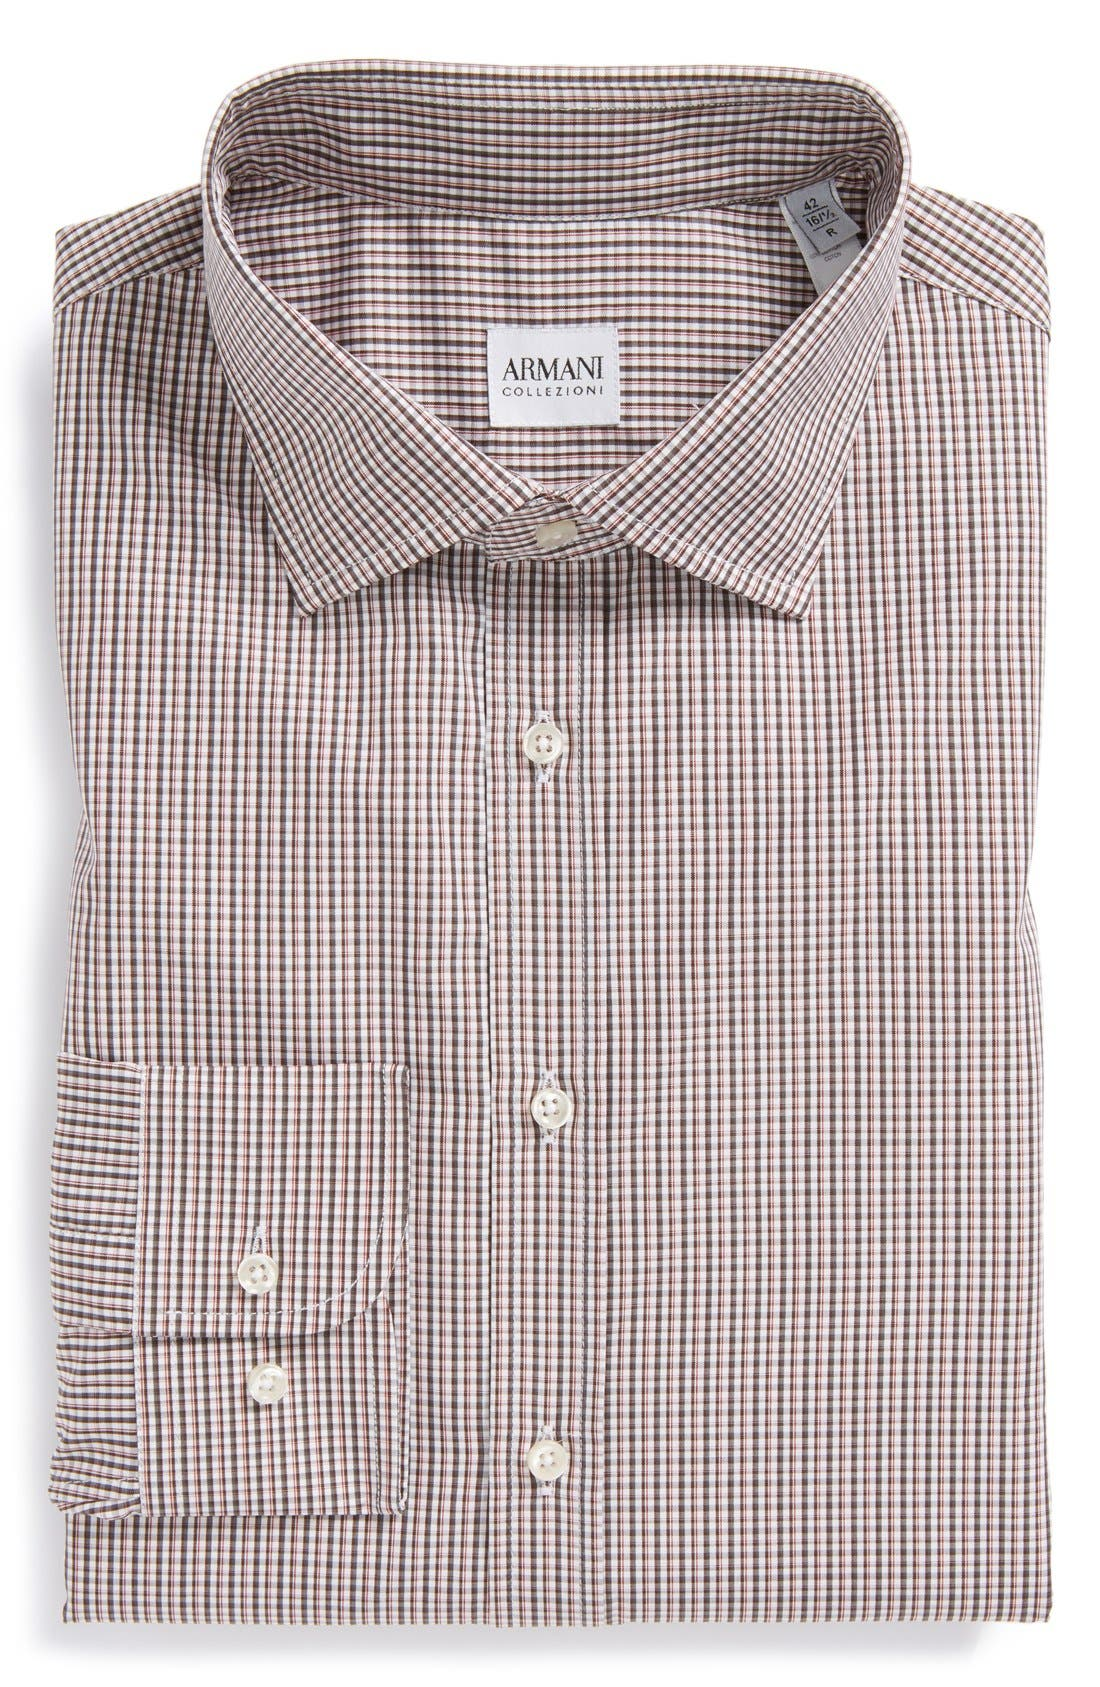 Main Image - Armani Collezioni Plaid Dress Shirt